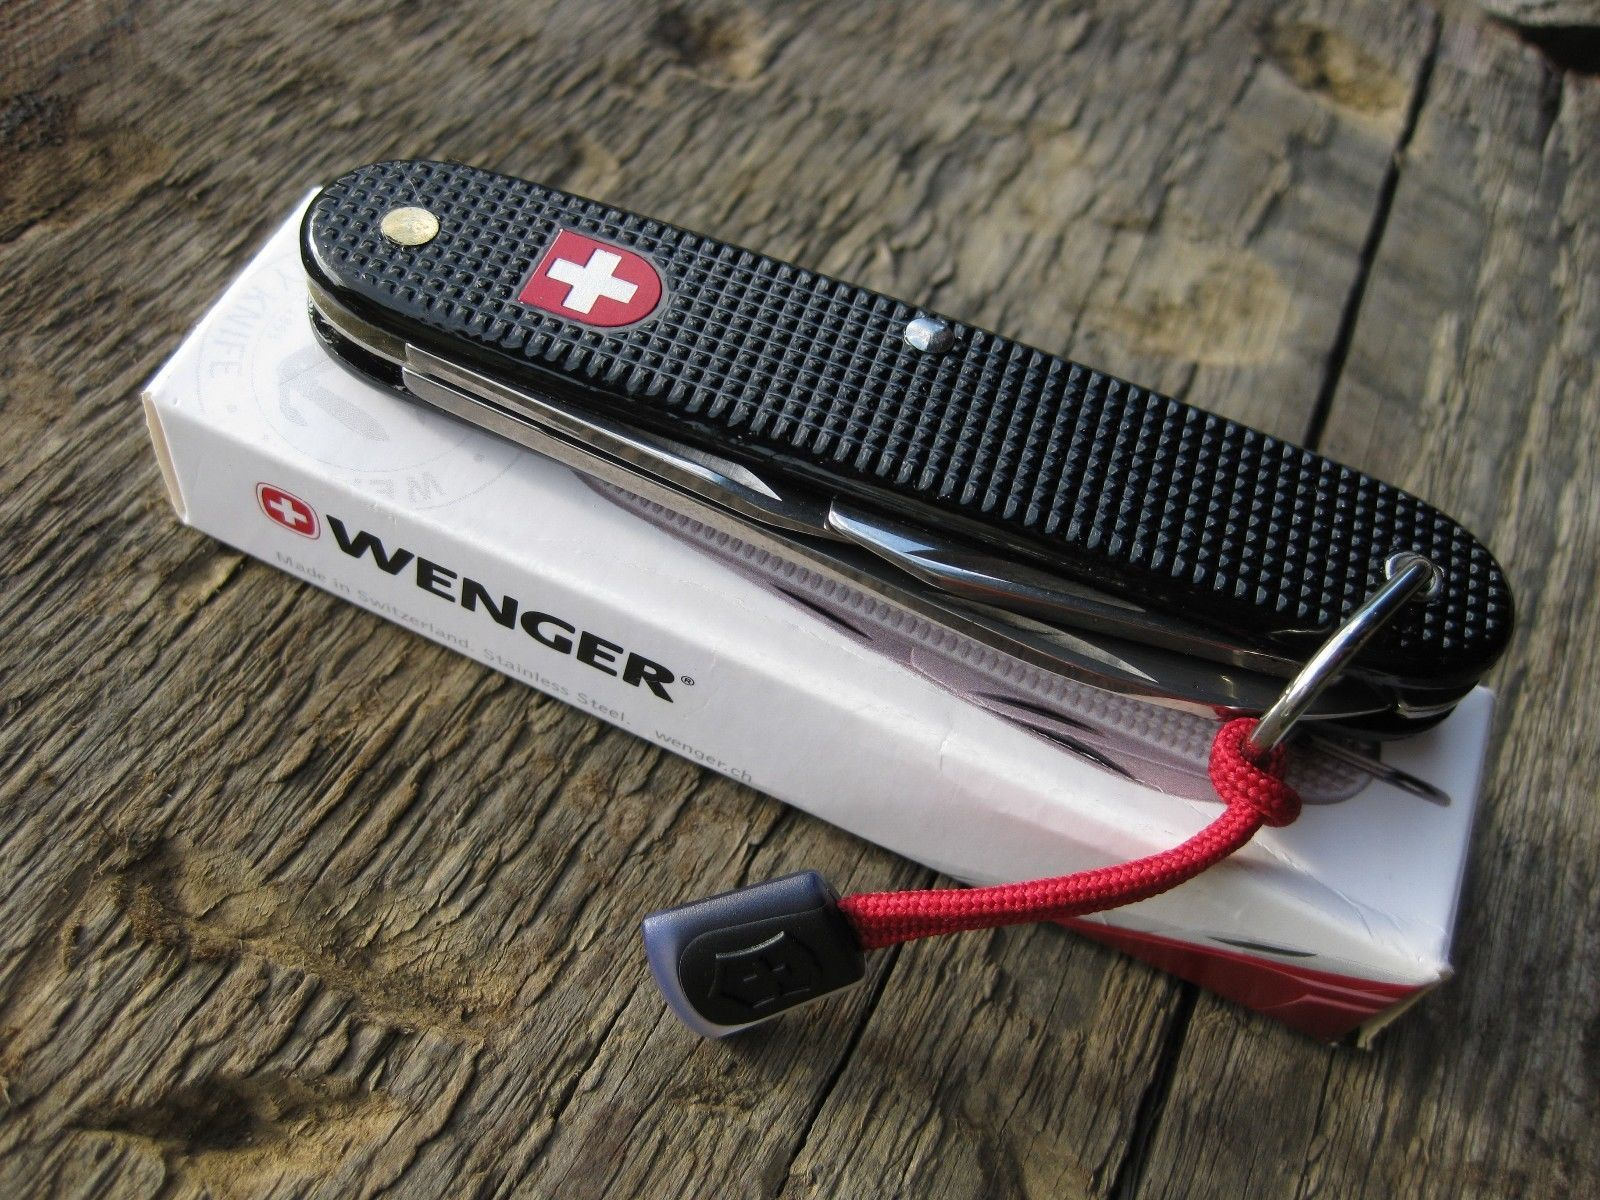 Wenger Black Soldat Soldier Swiss Army Knife Alox